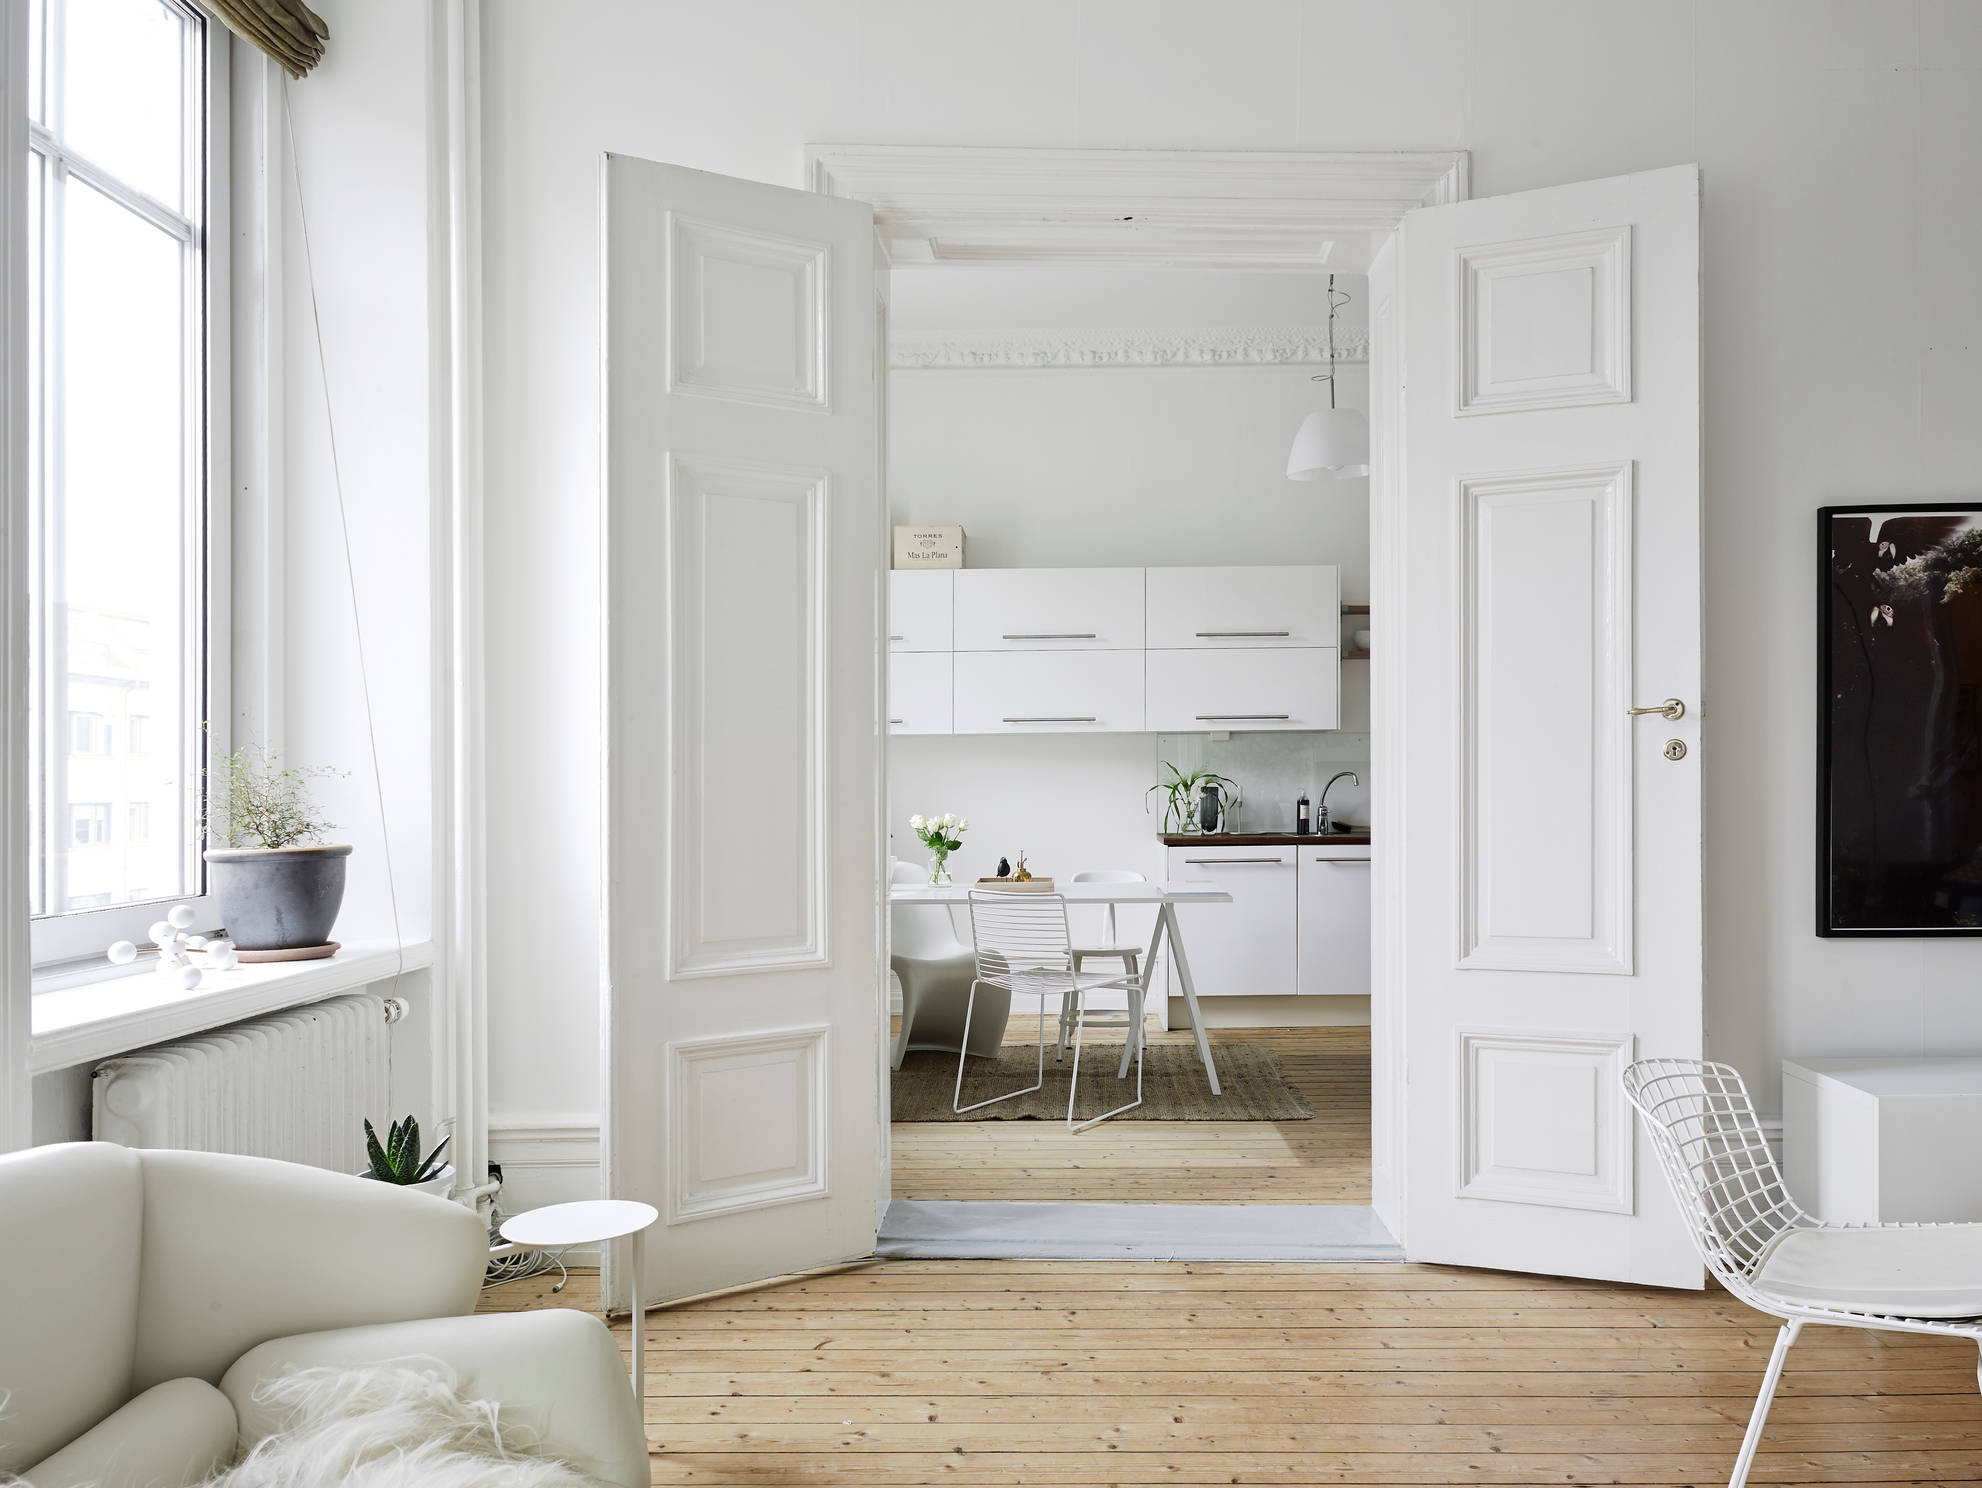 Neutrals and clean lines in an old building coco lapine for Porte westag